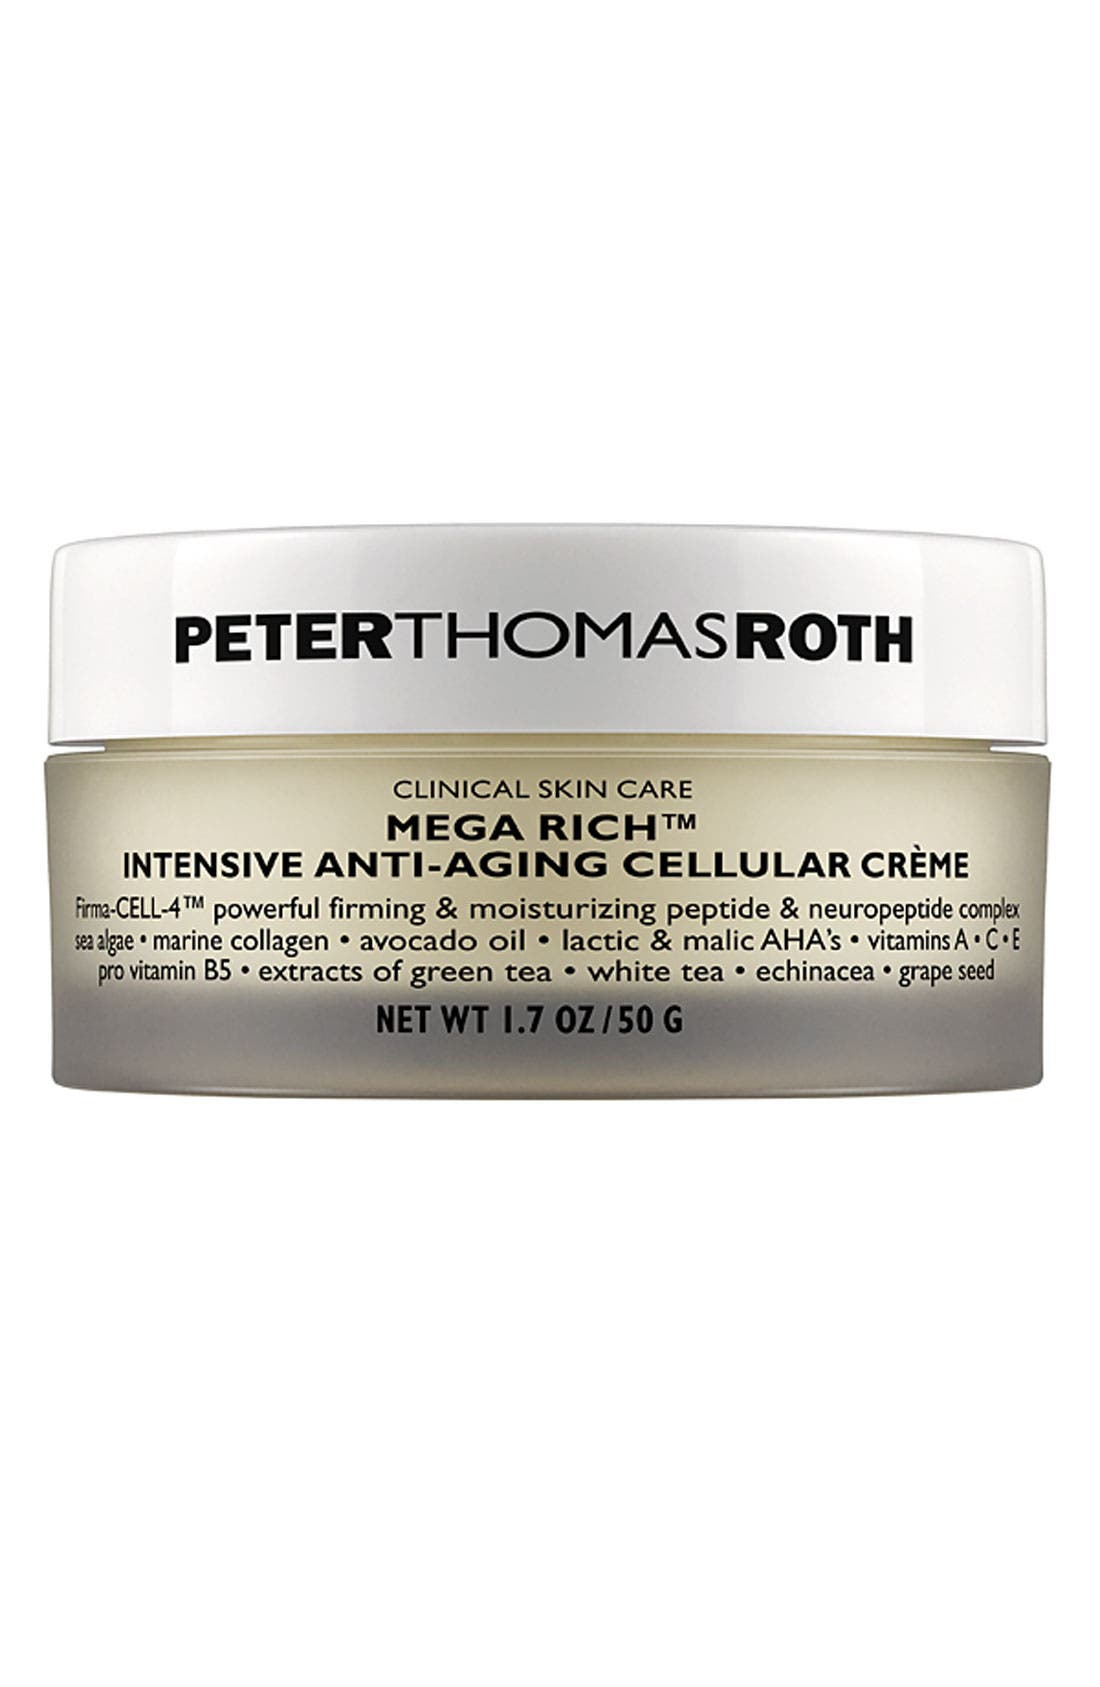 Peter Thomas Roth 'Mega Rich' Intensive Anti-Aging Cellular Crème